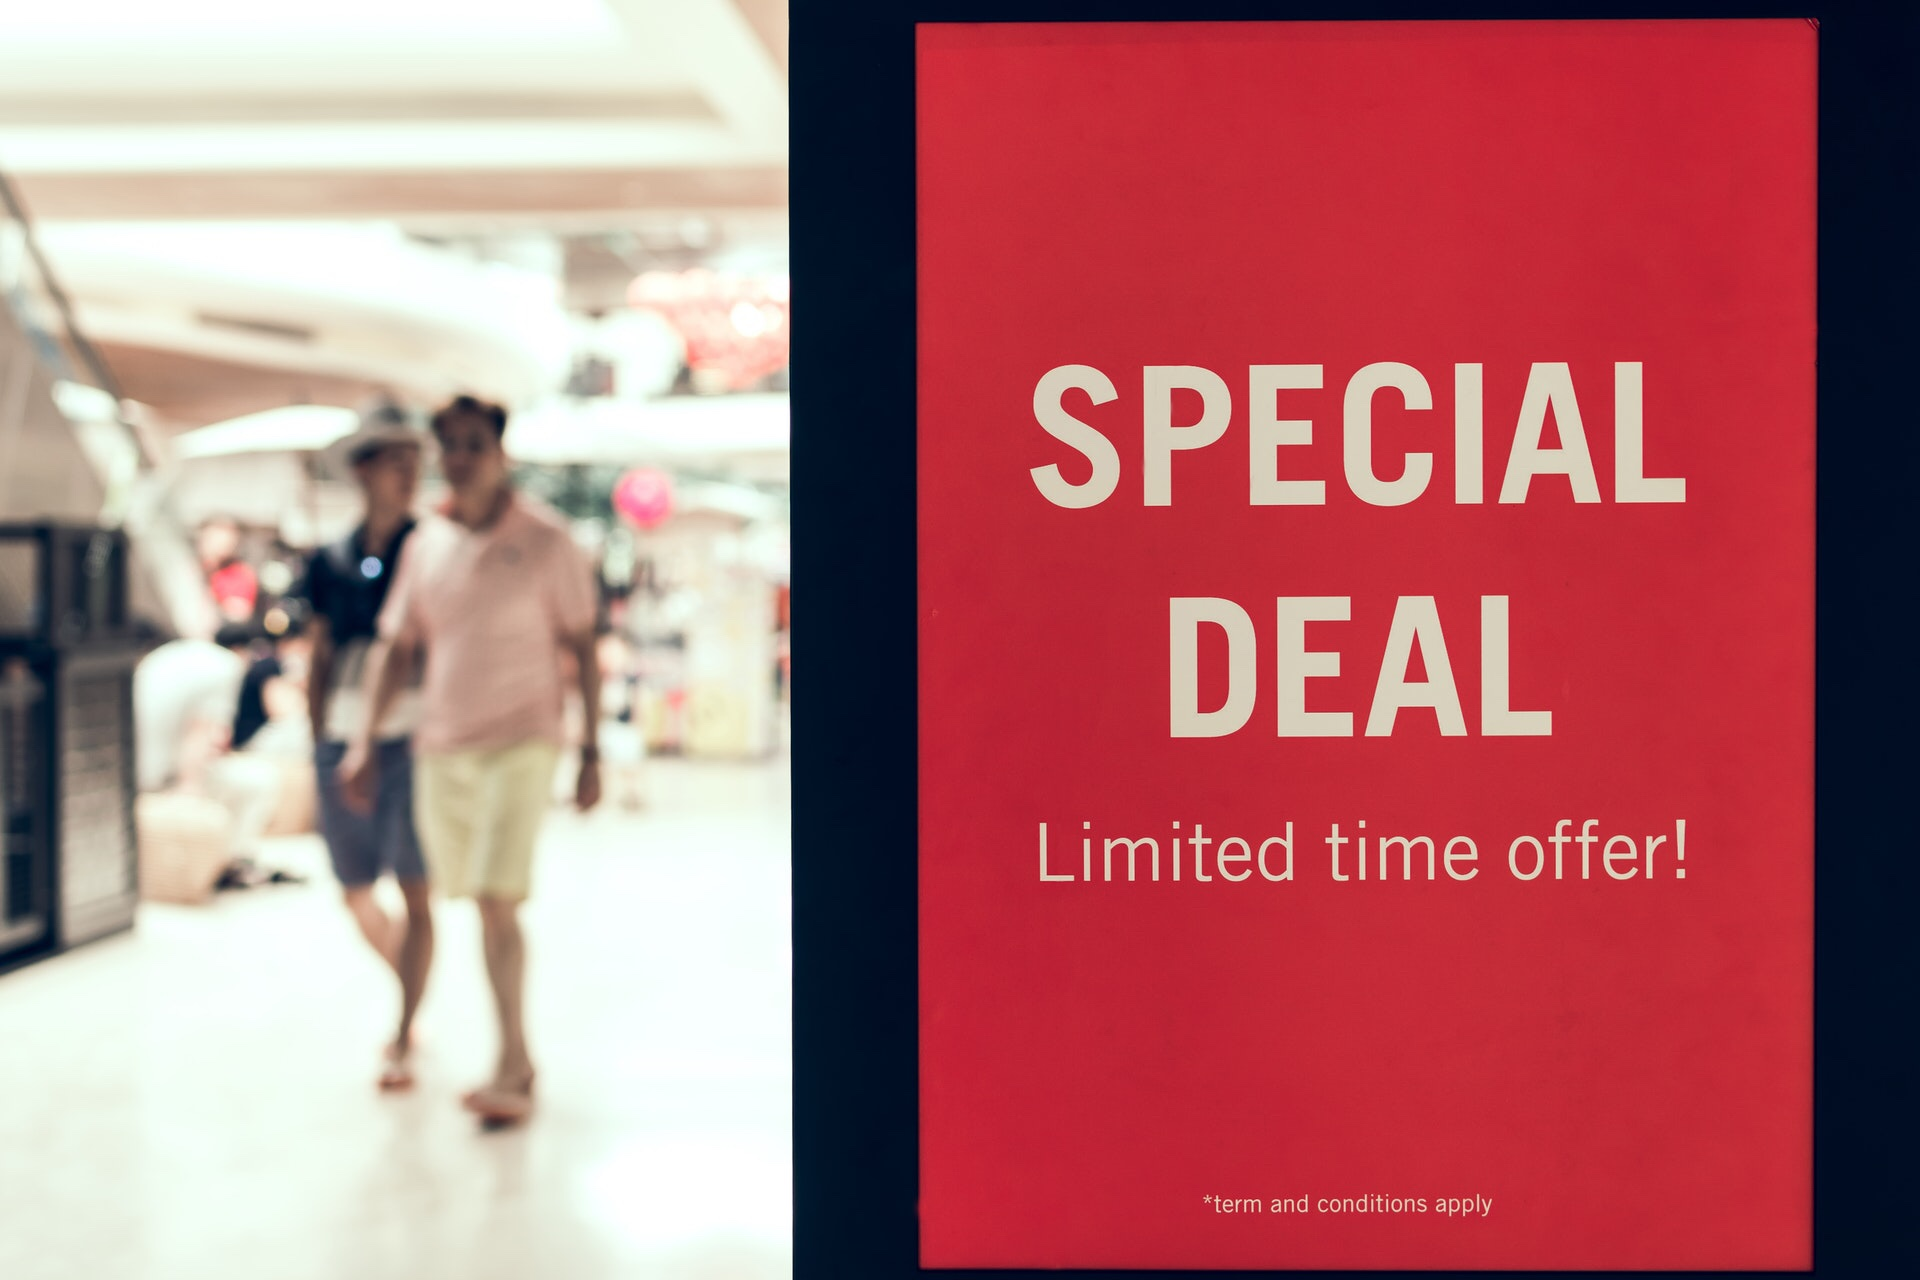 Special deal sign at a store to help customers save money